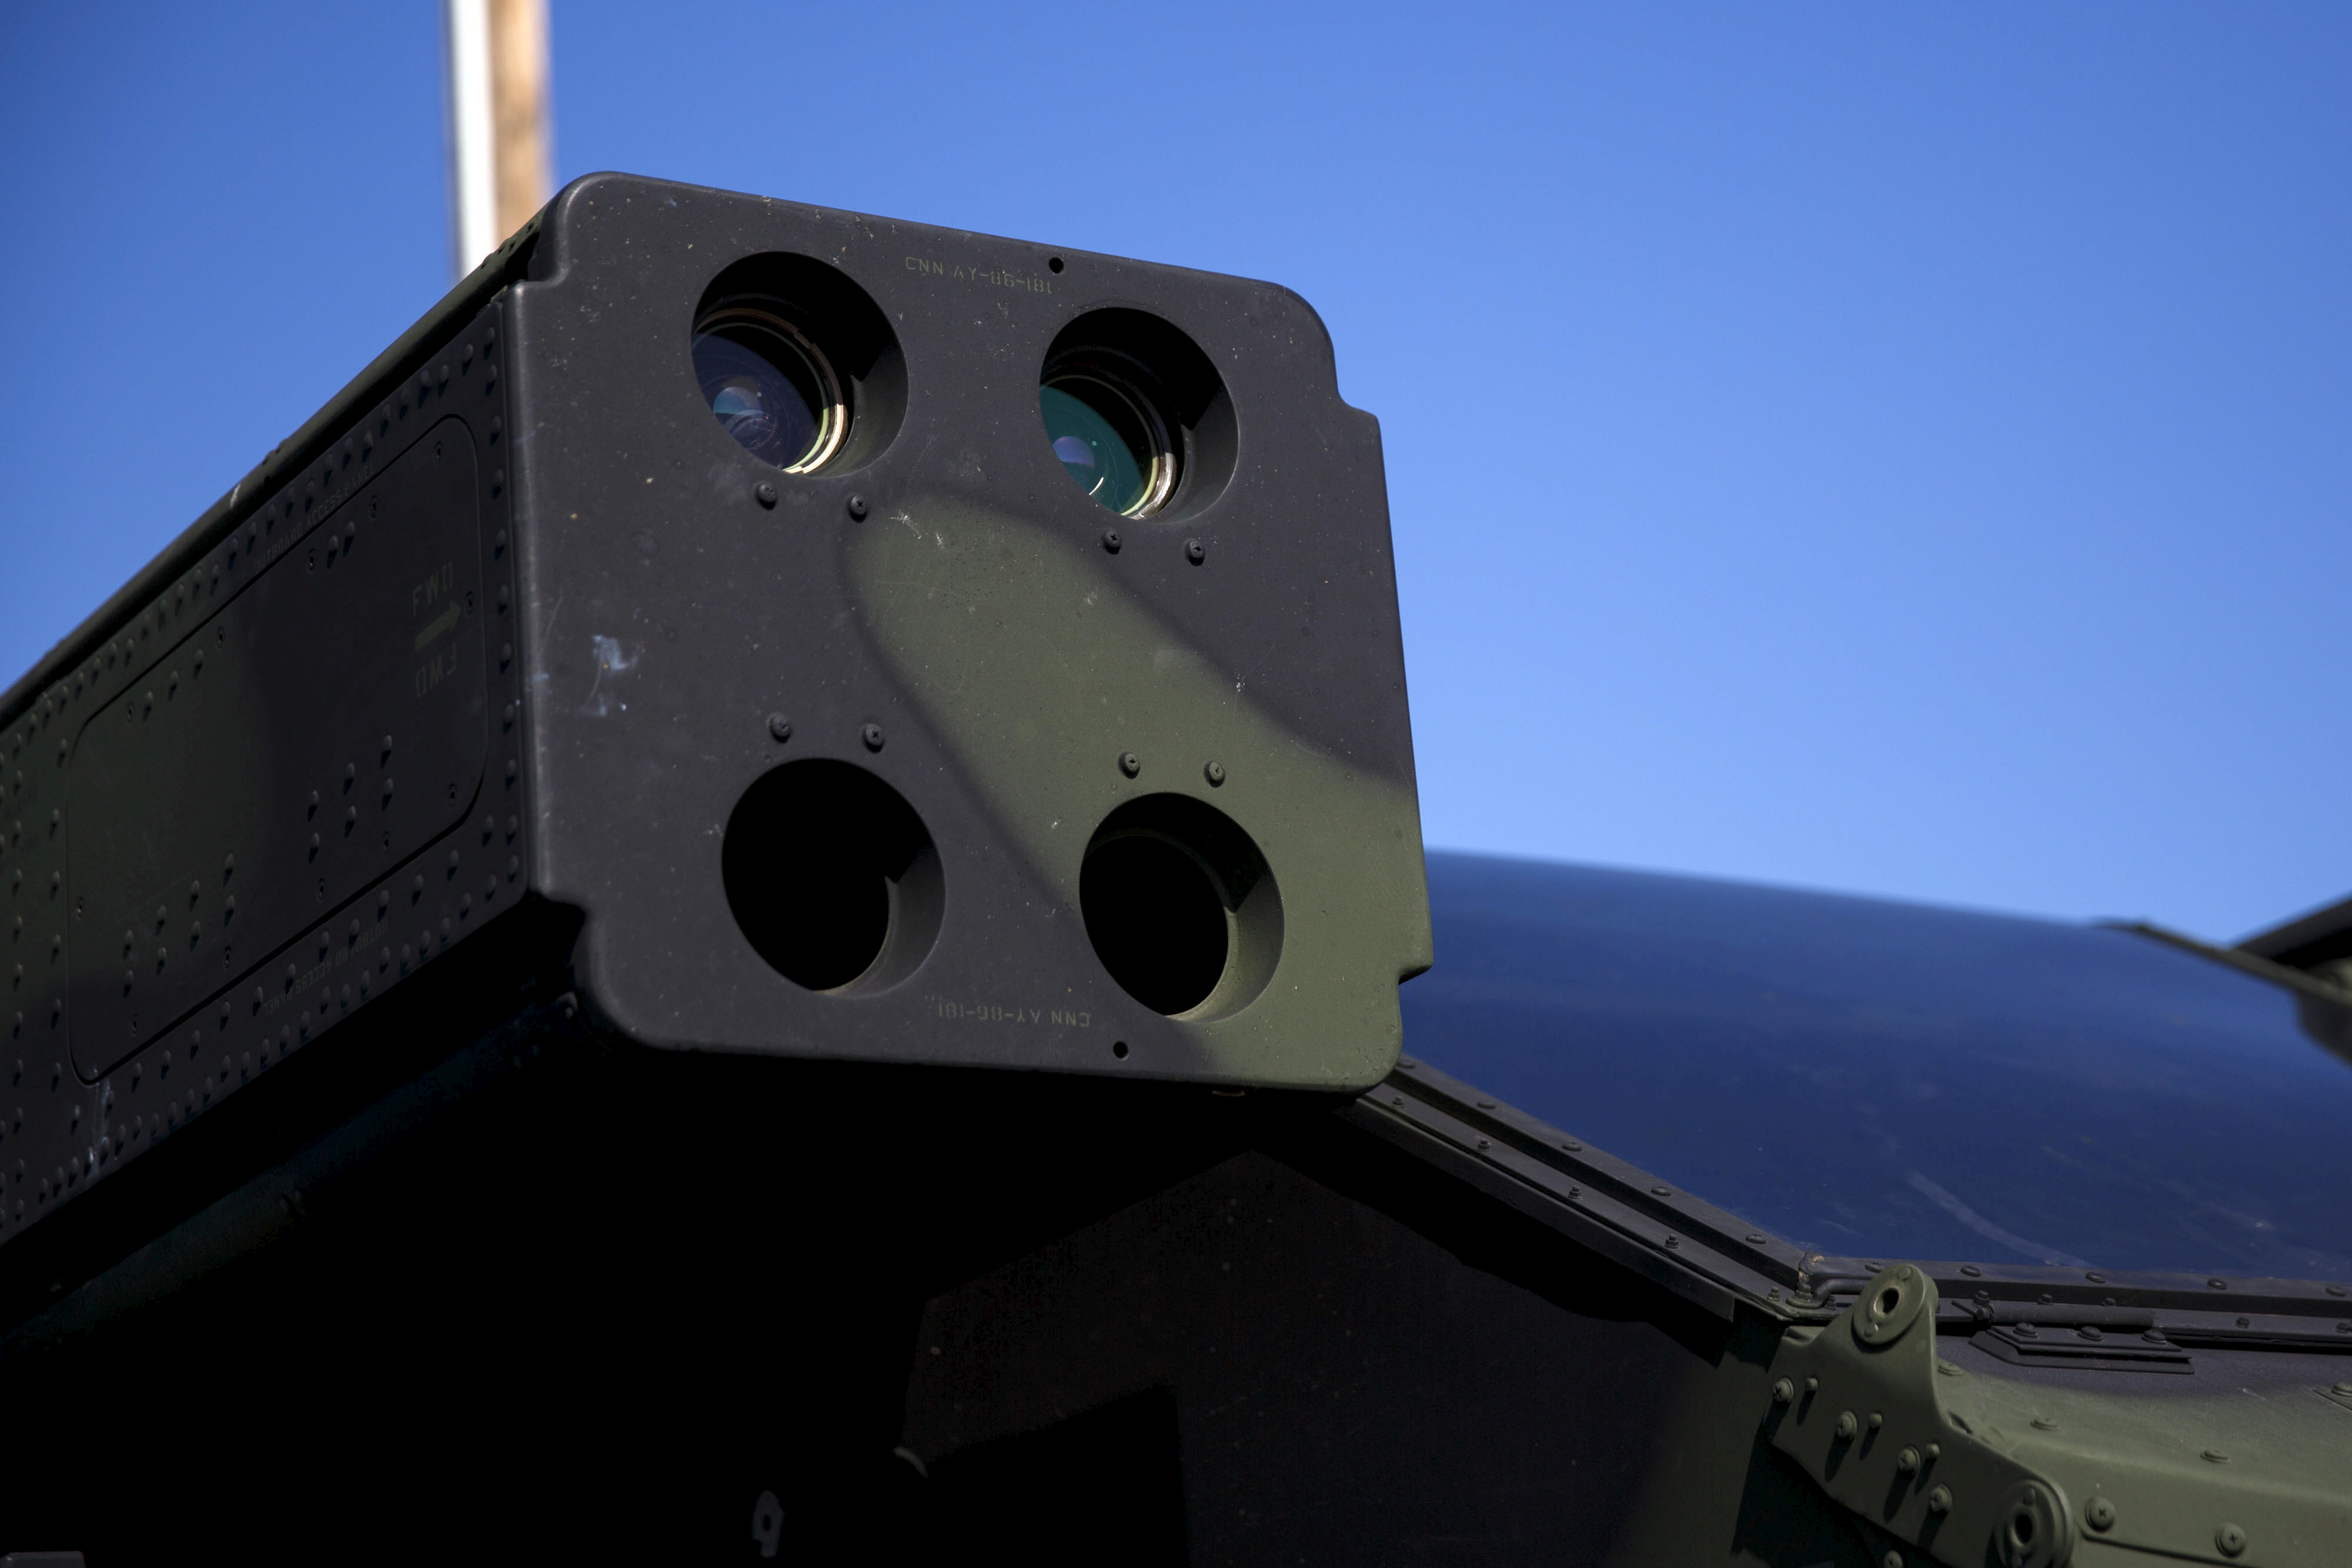 The US Army Avenger Air Defense System (AN/TWQ-1) used to fire Stinger missiles is displayed with two test missiles during